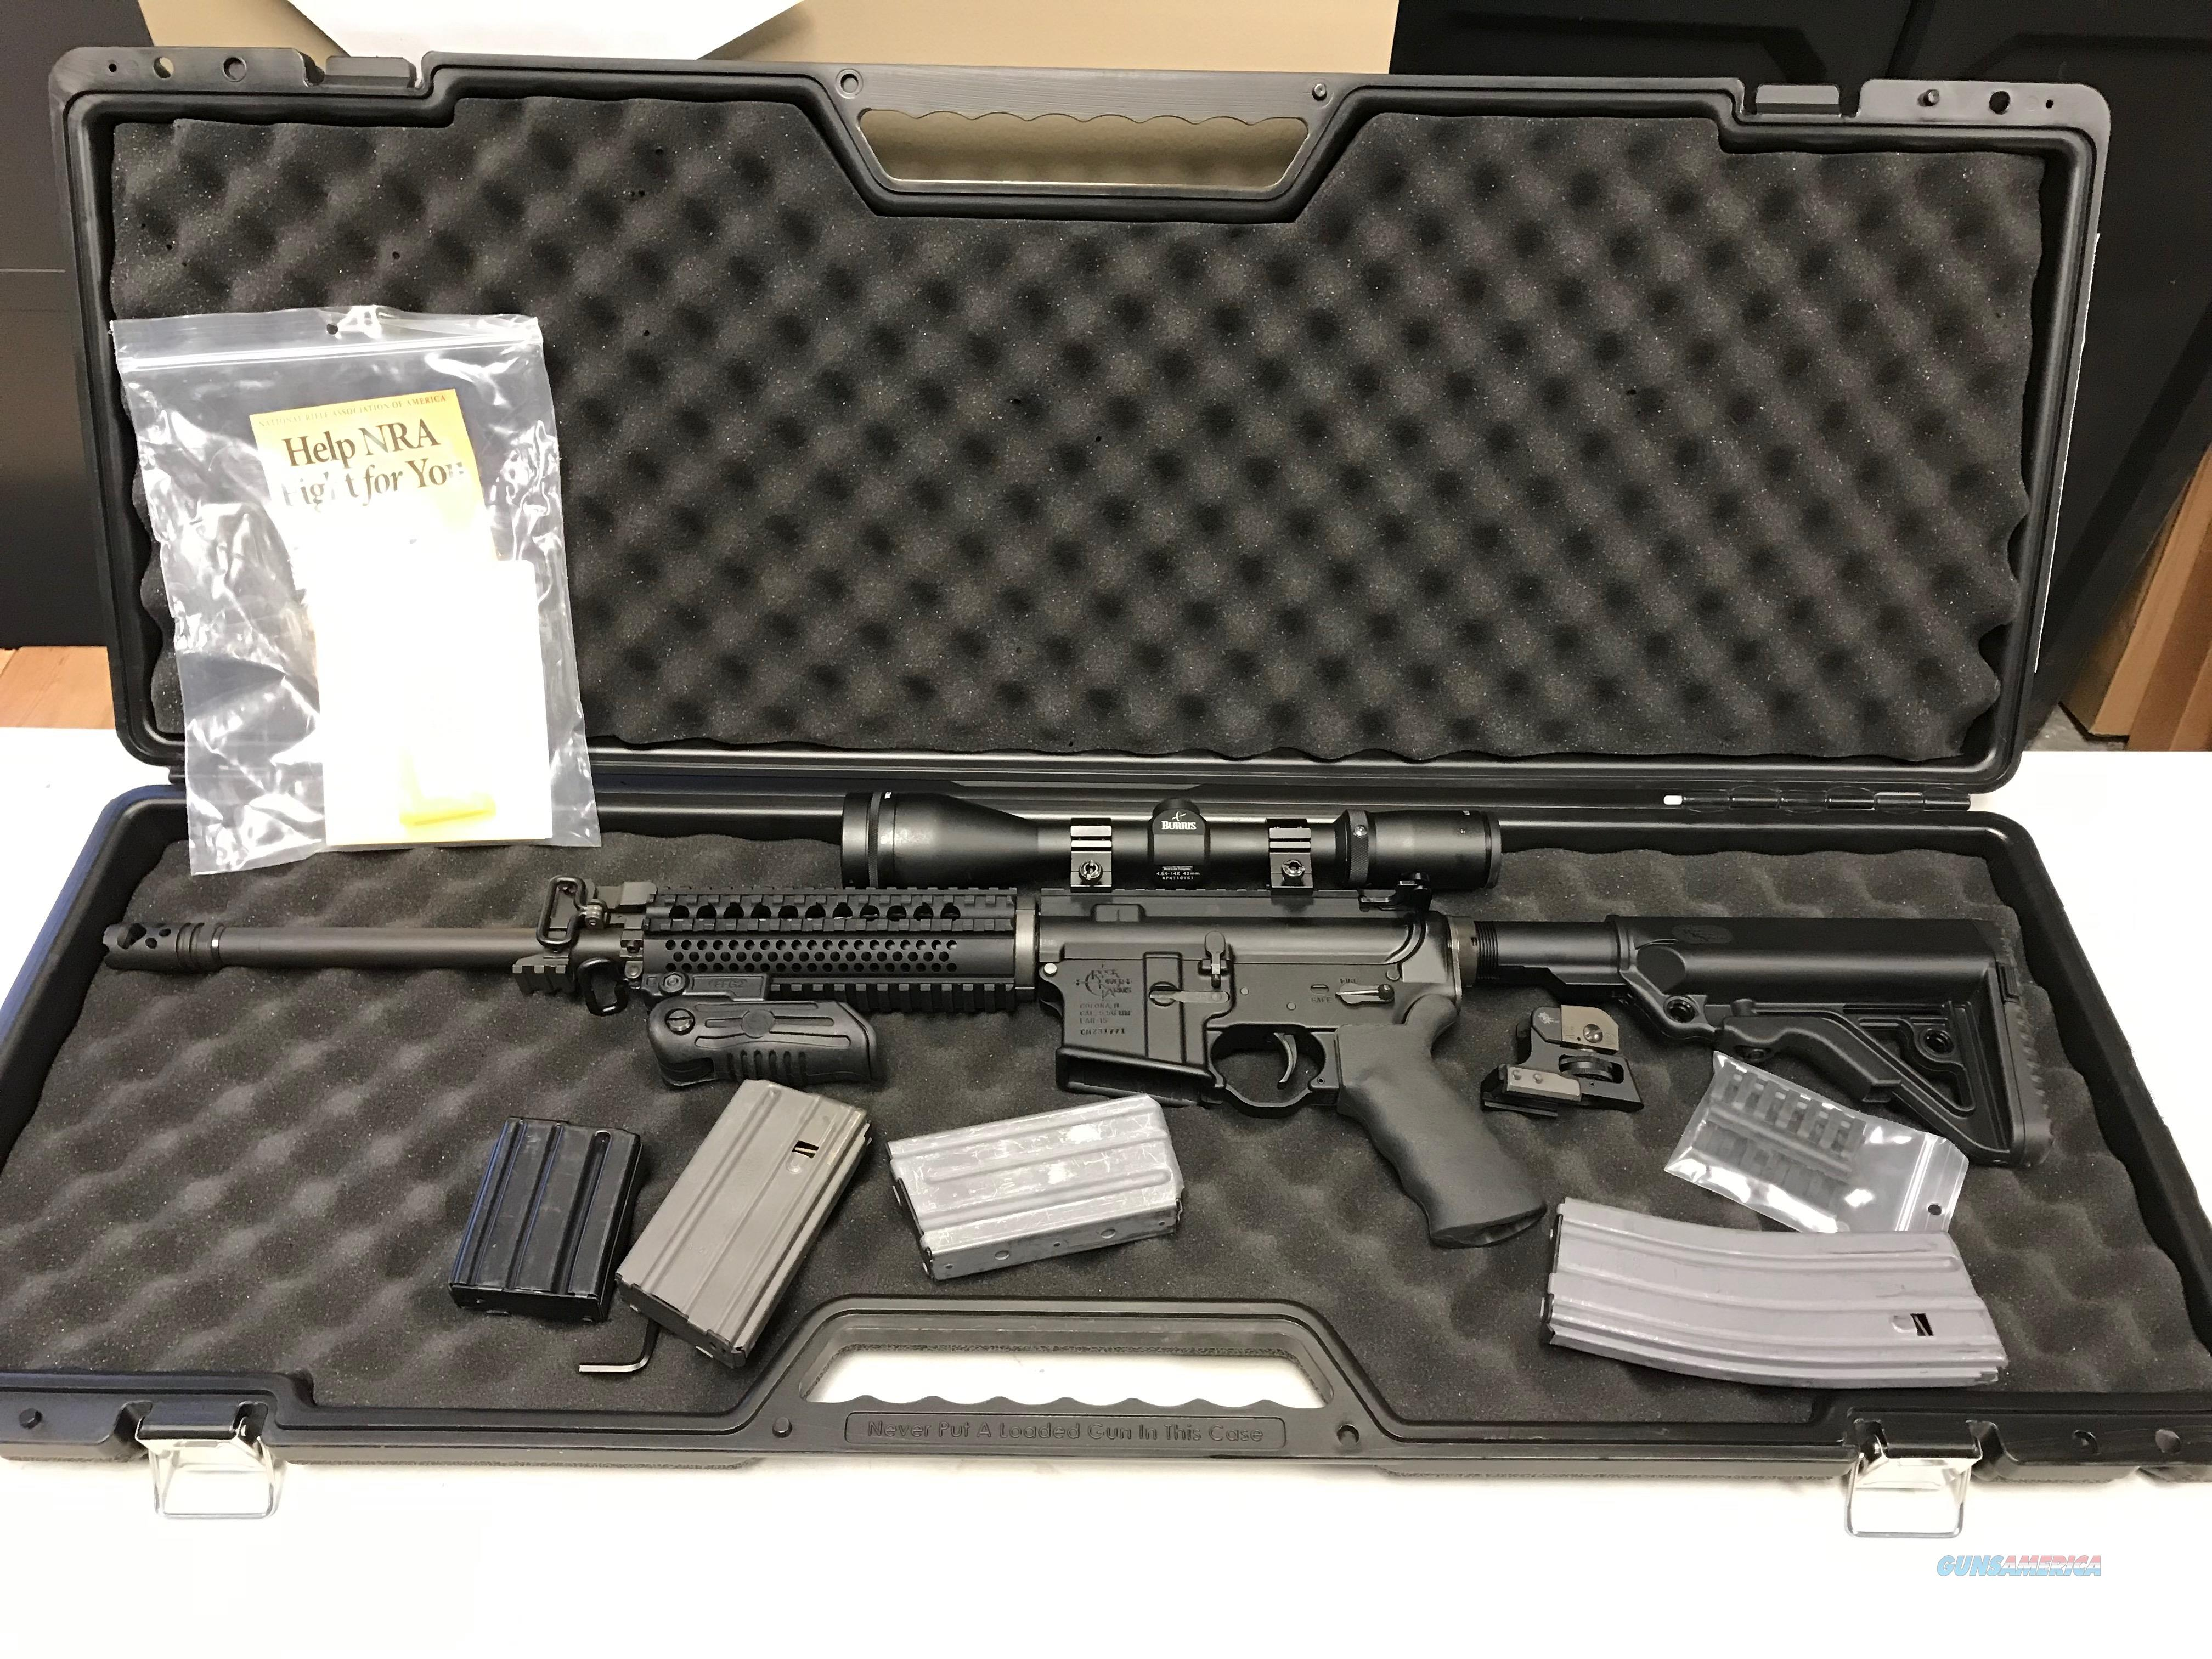 Used Rock River Operator 5.56NATO with Accessories!  Guns > Rifles > Rock River Arms Rifles